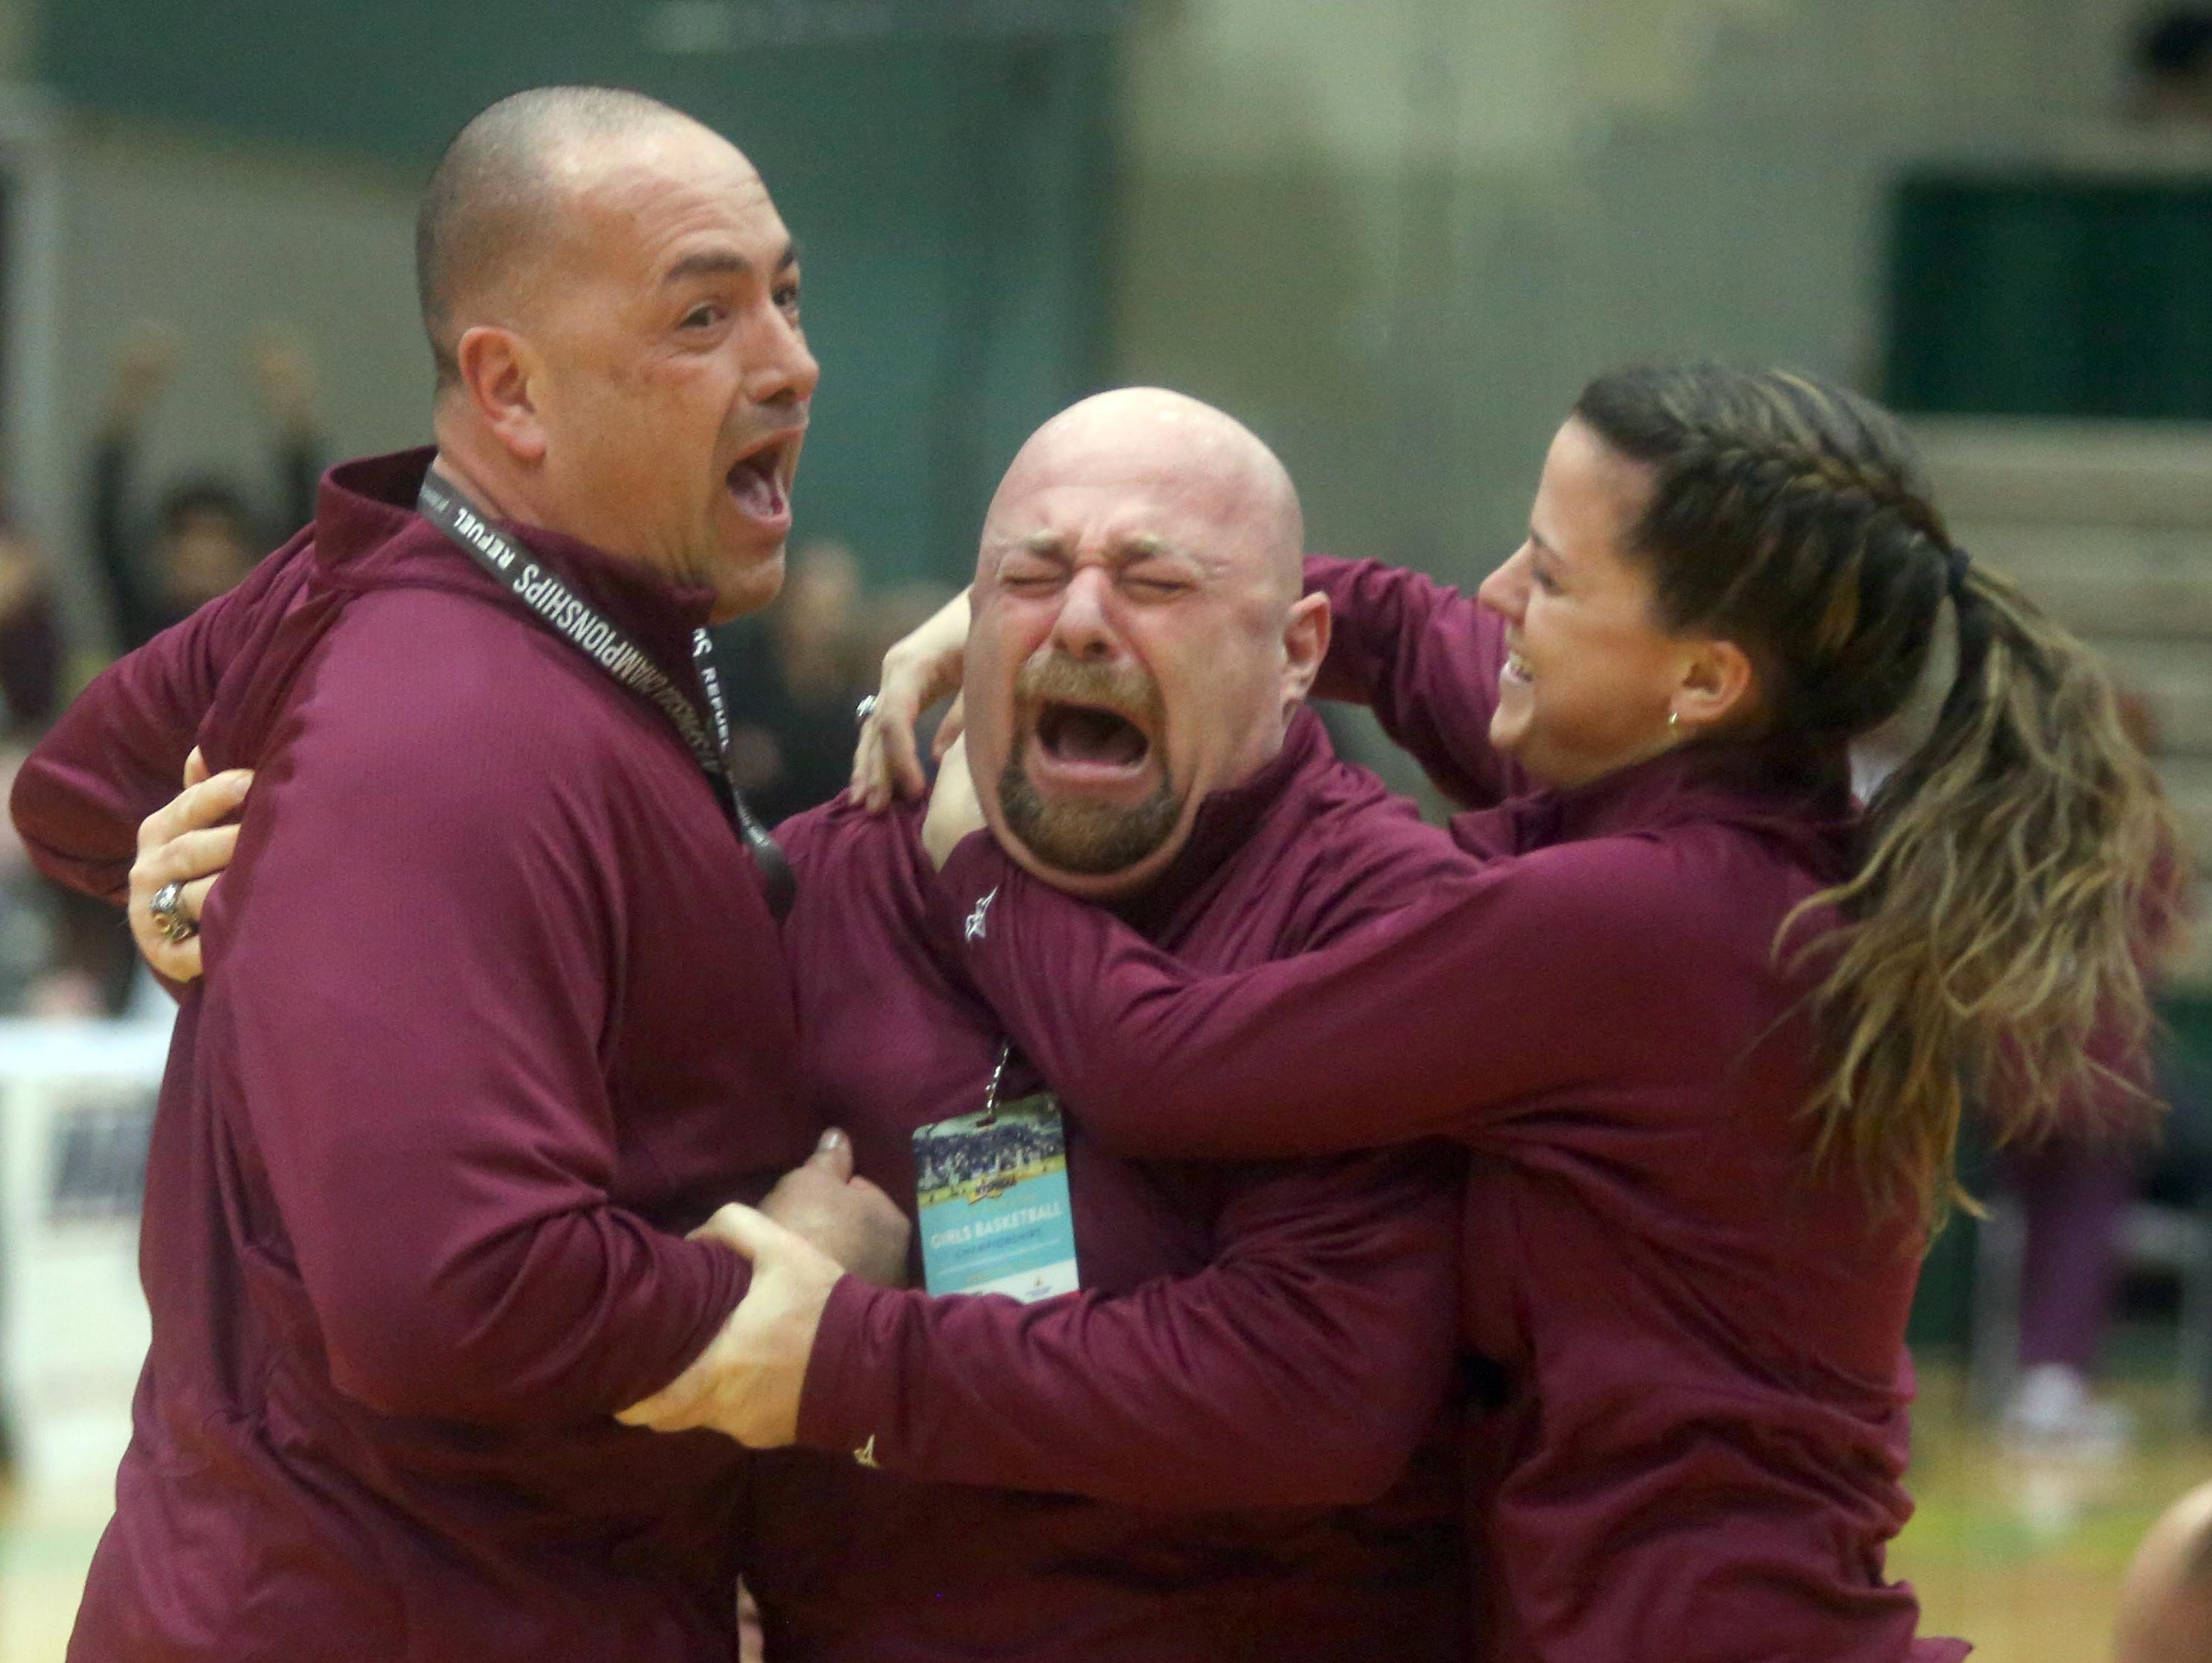 Ossining head coach Dan Ricci, center, celebrates with his assistant coaches after Ossining defeated Shenendehowa 69-66 to win the the New York State Class AA championship at Hudson Valley Community College in Troy March 12, 2016.